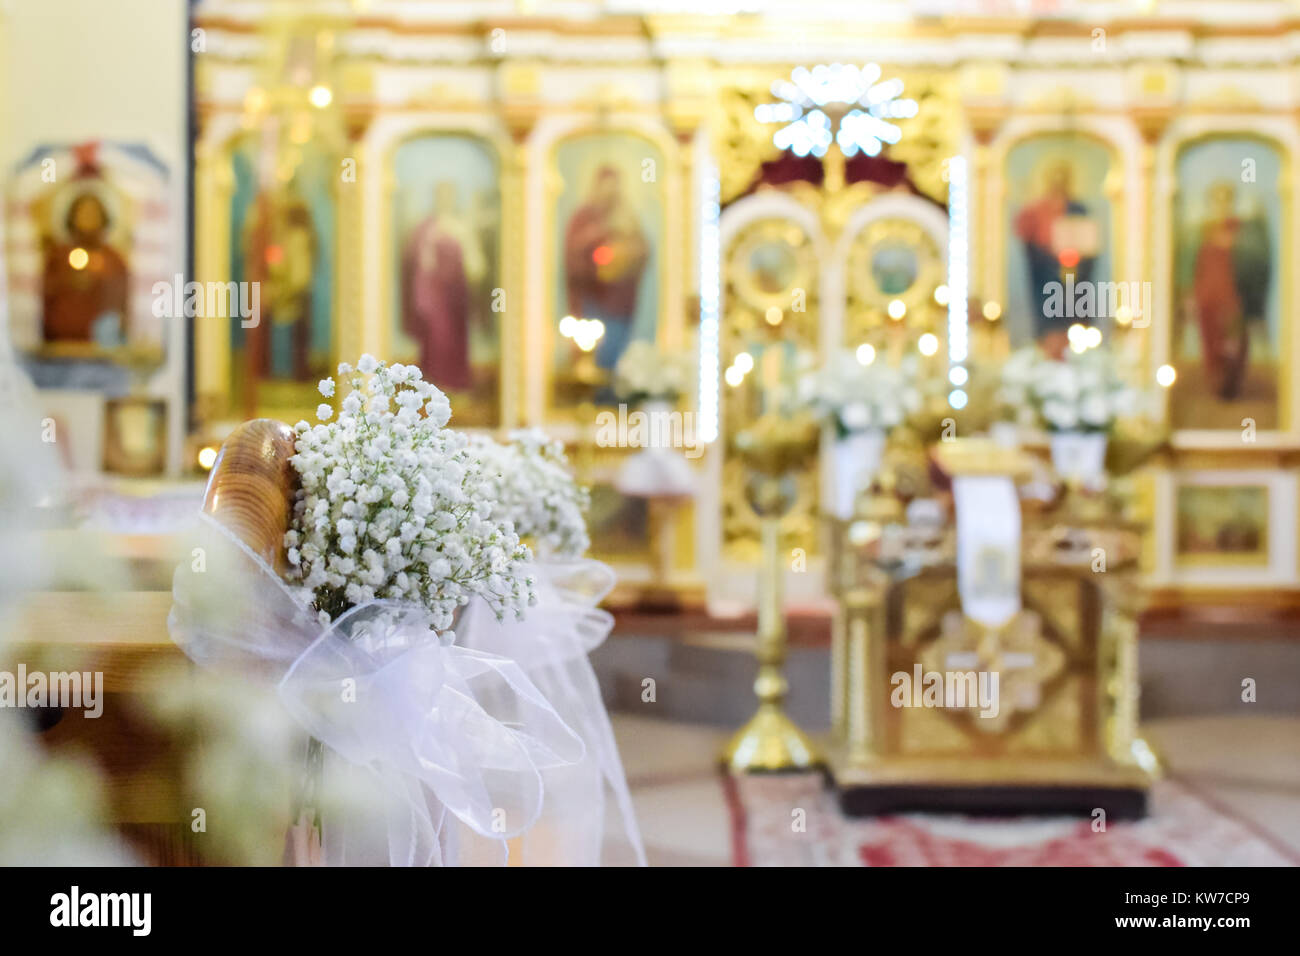 Dekoration Hochzeit Russisch Russian Orthodox Church Altar Stockfotos And Russian